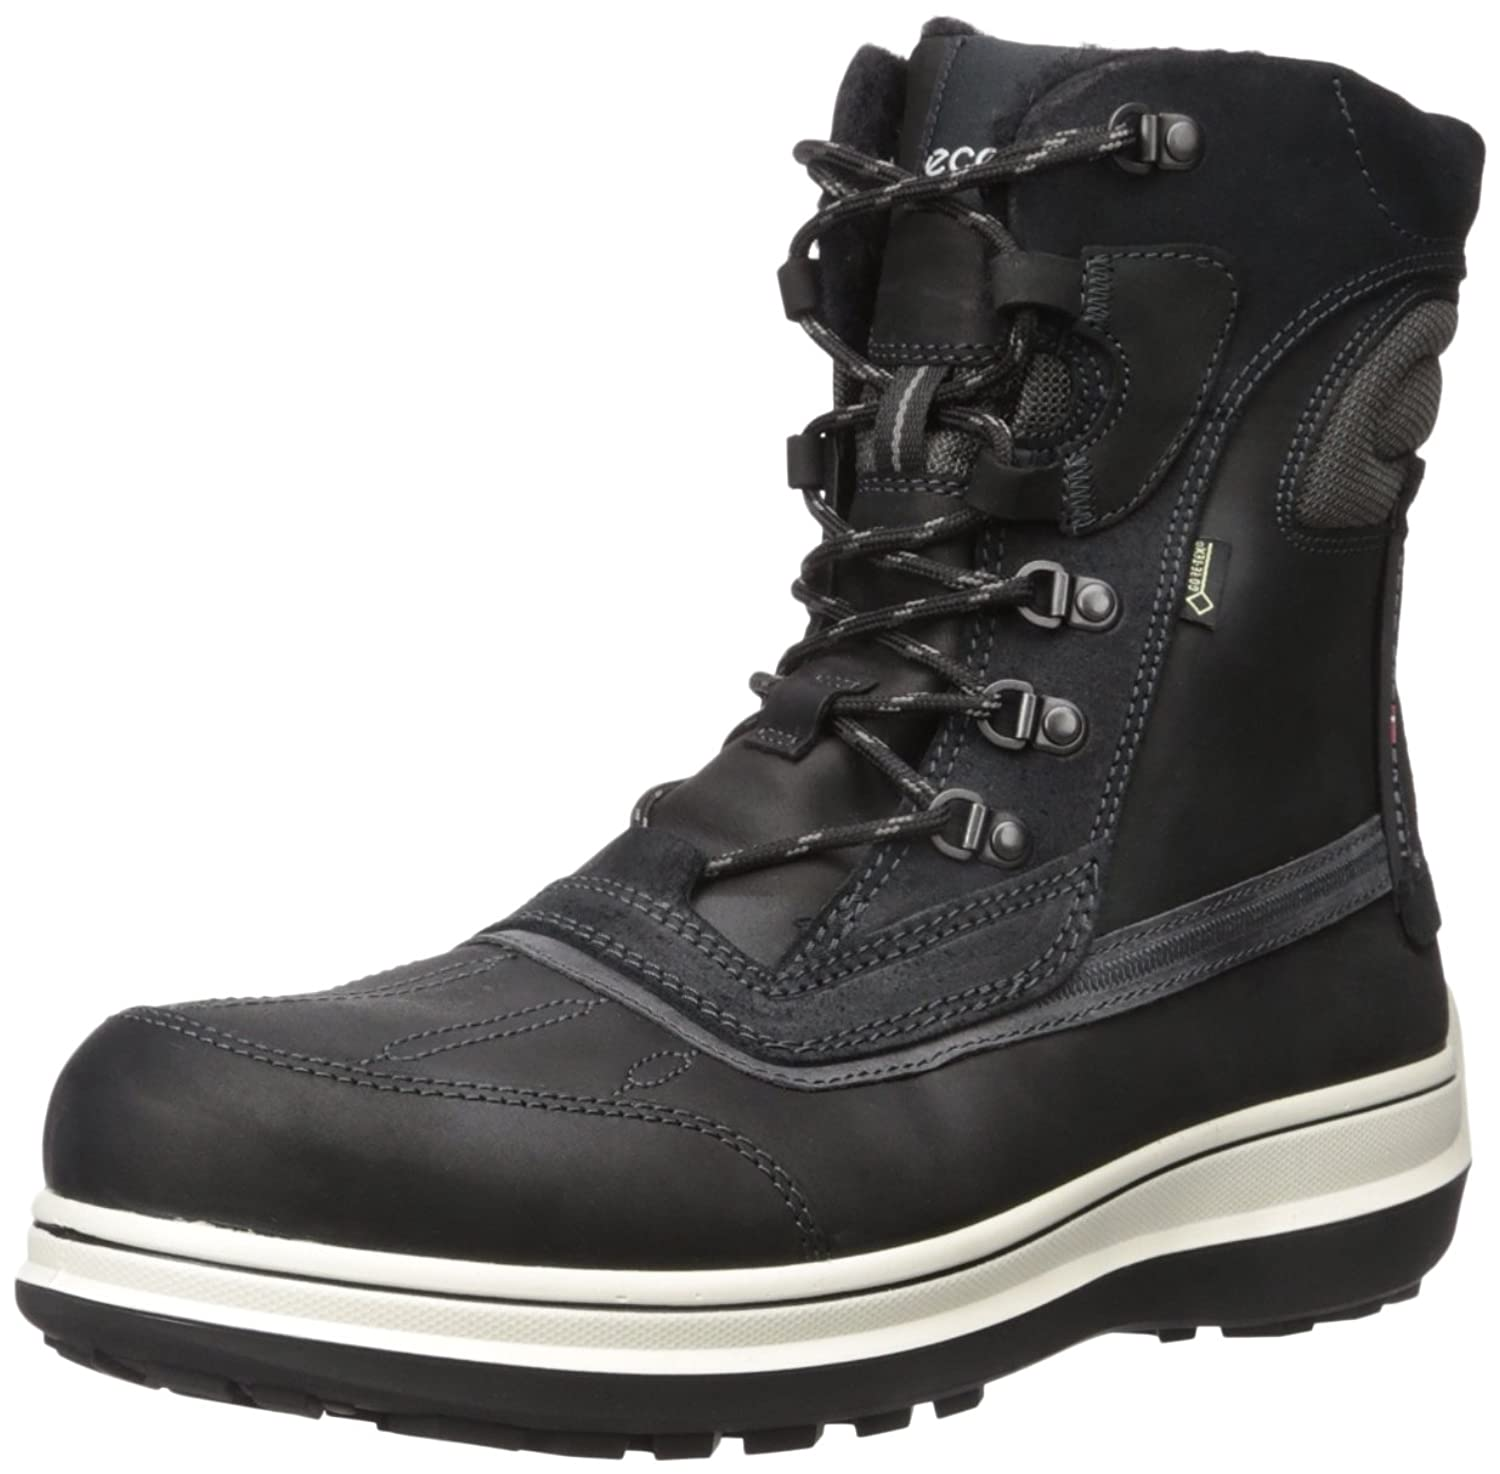 ECCO Men's Roxton Gore-Tex Snow Boot